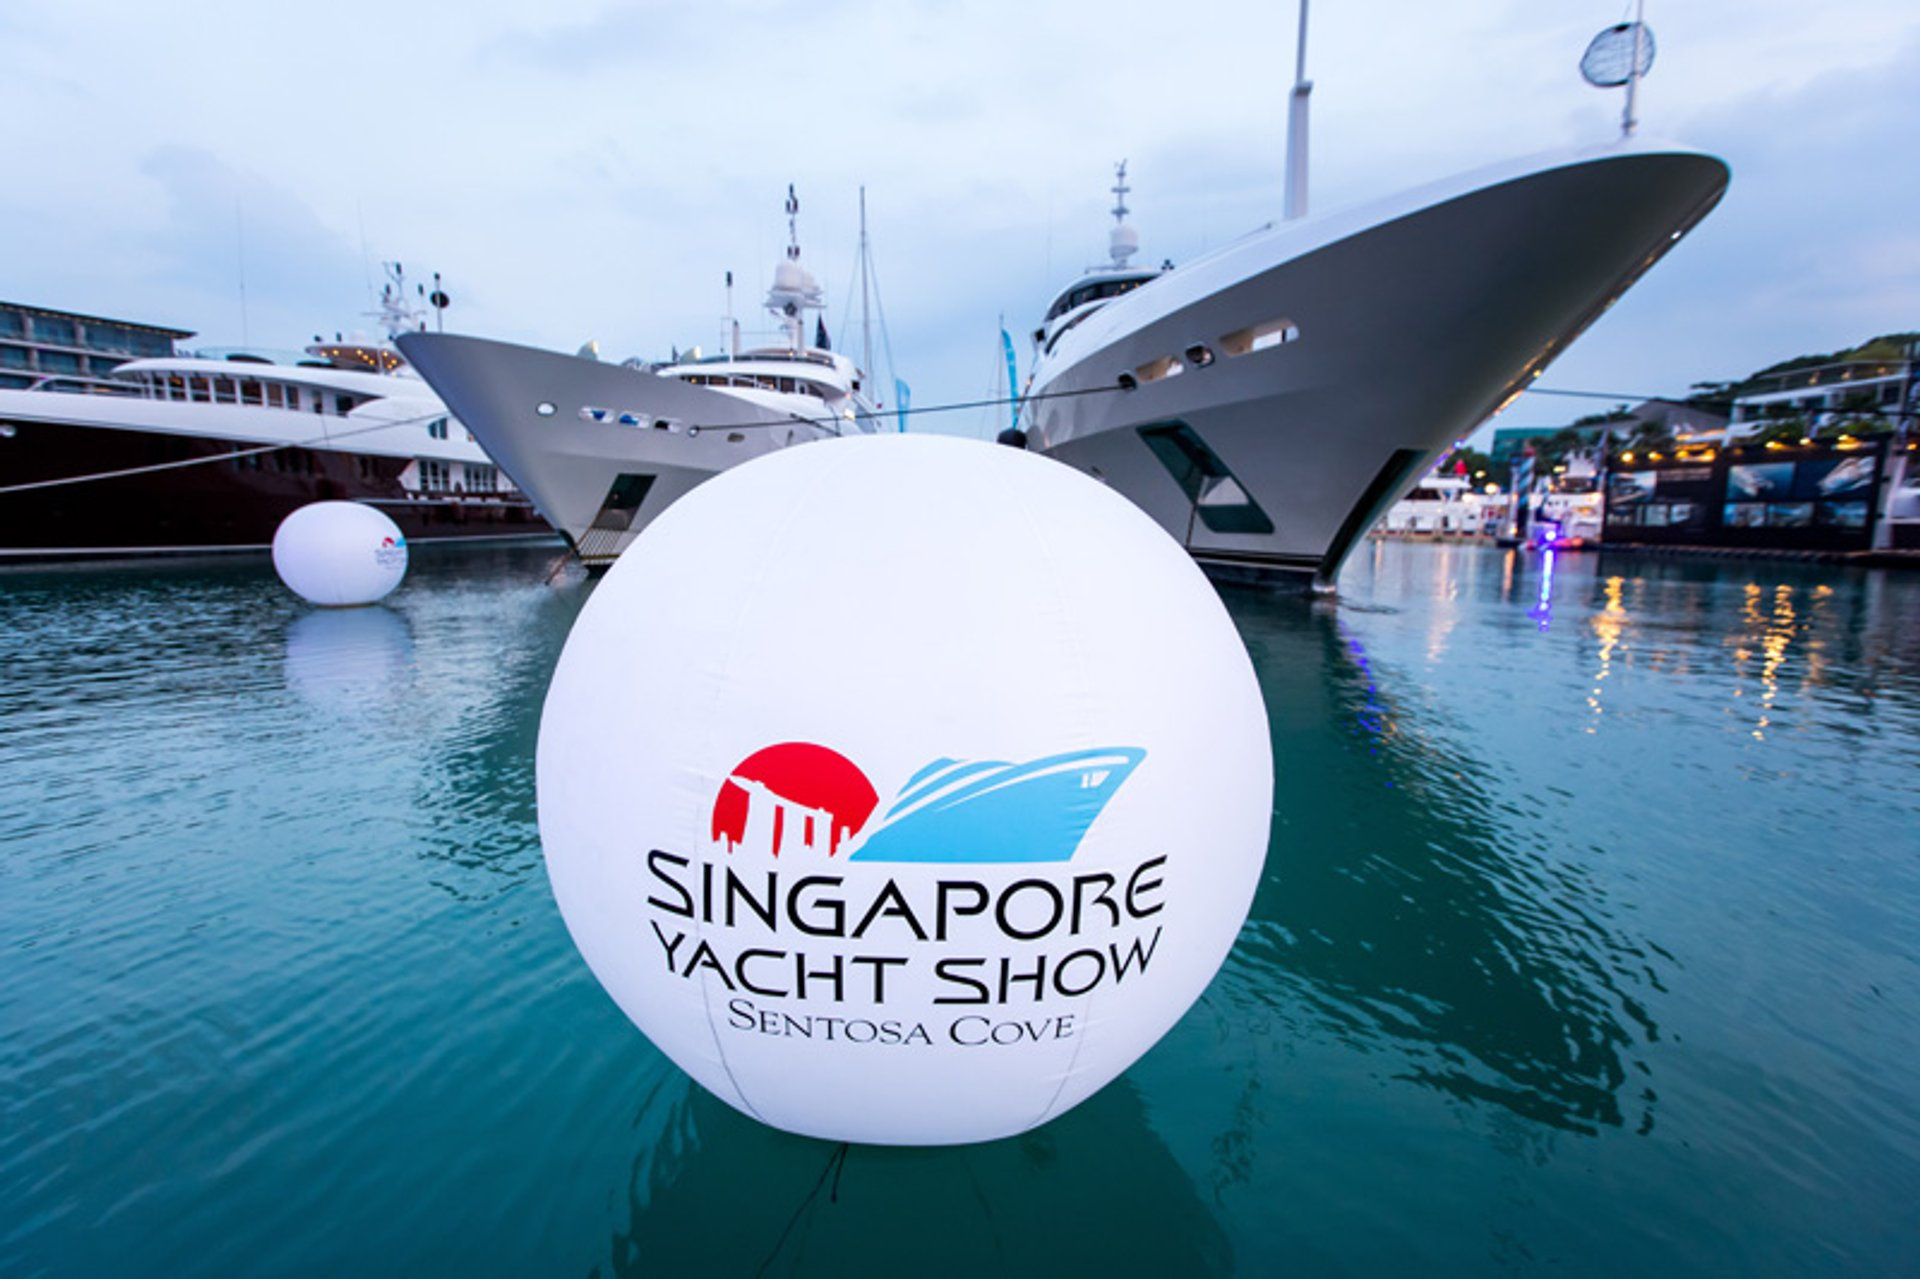 Singapore Yacht Show in Singapore 2020 - Best Time